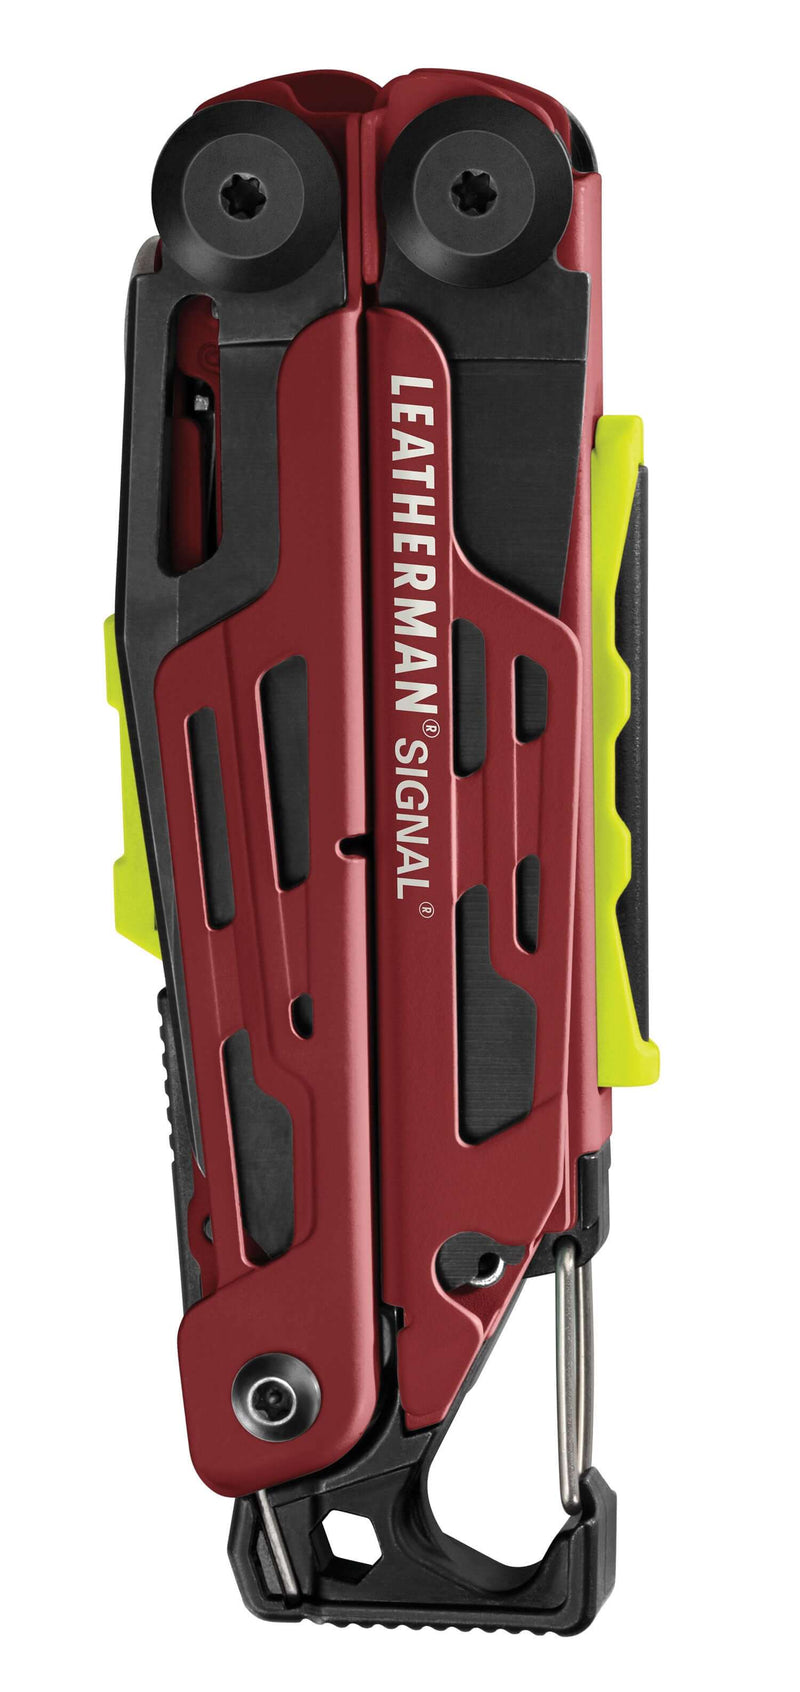 Closed Leatherman Signal®+ Multi-Tool